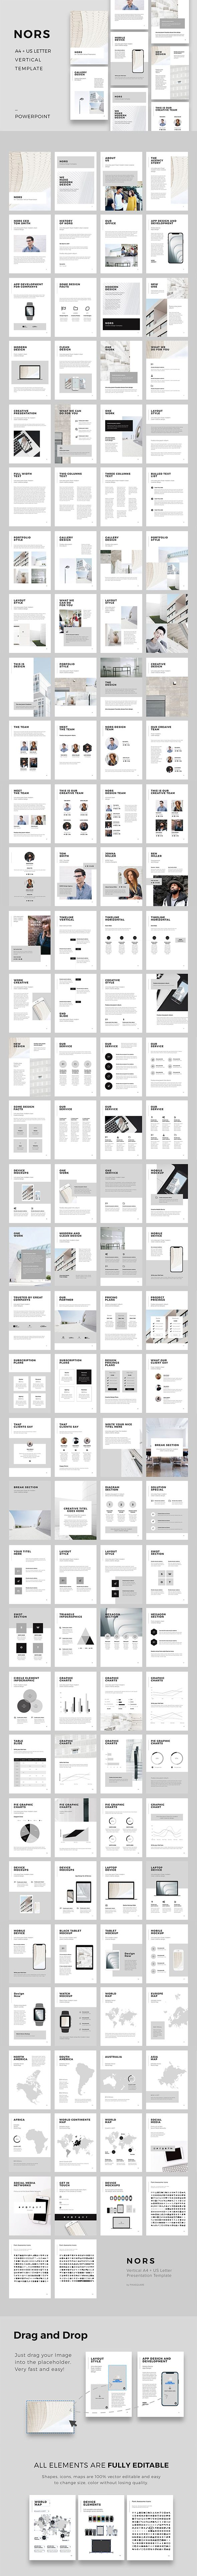 Nors vertical powerpoint a4 us letter template toneelgroepblik Image collections